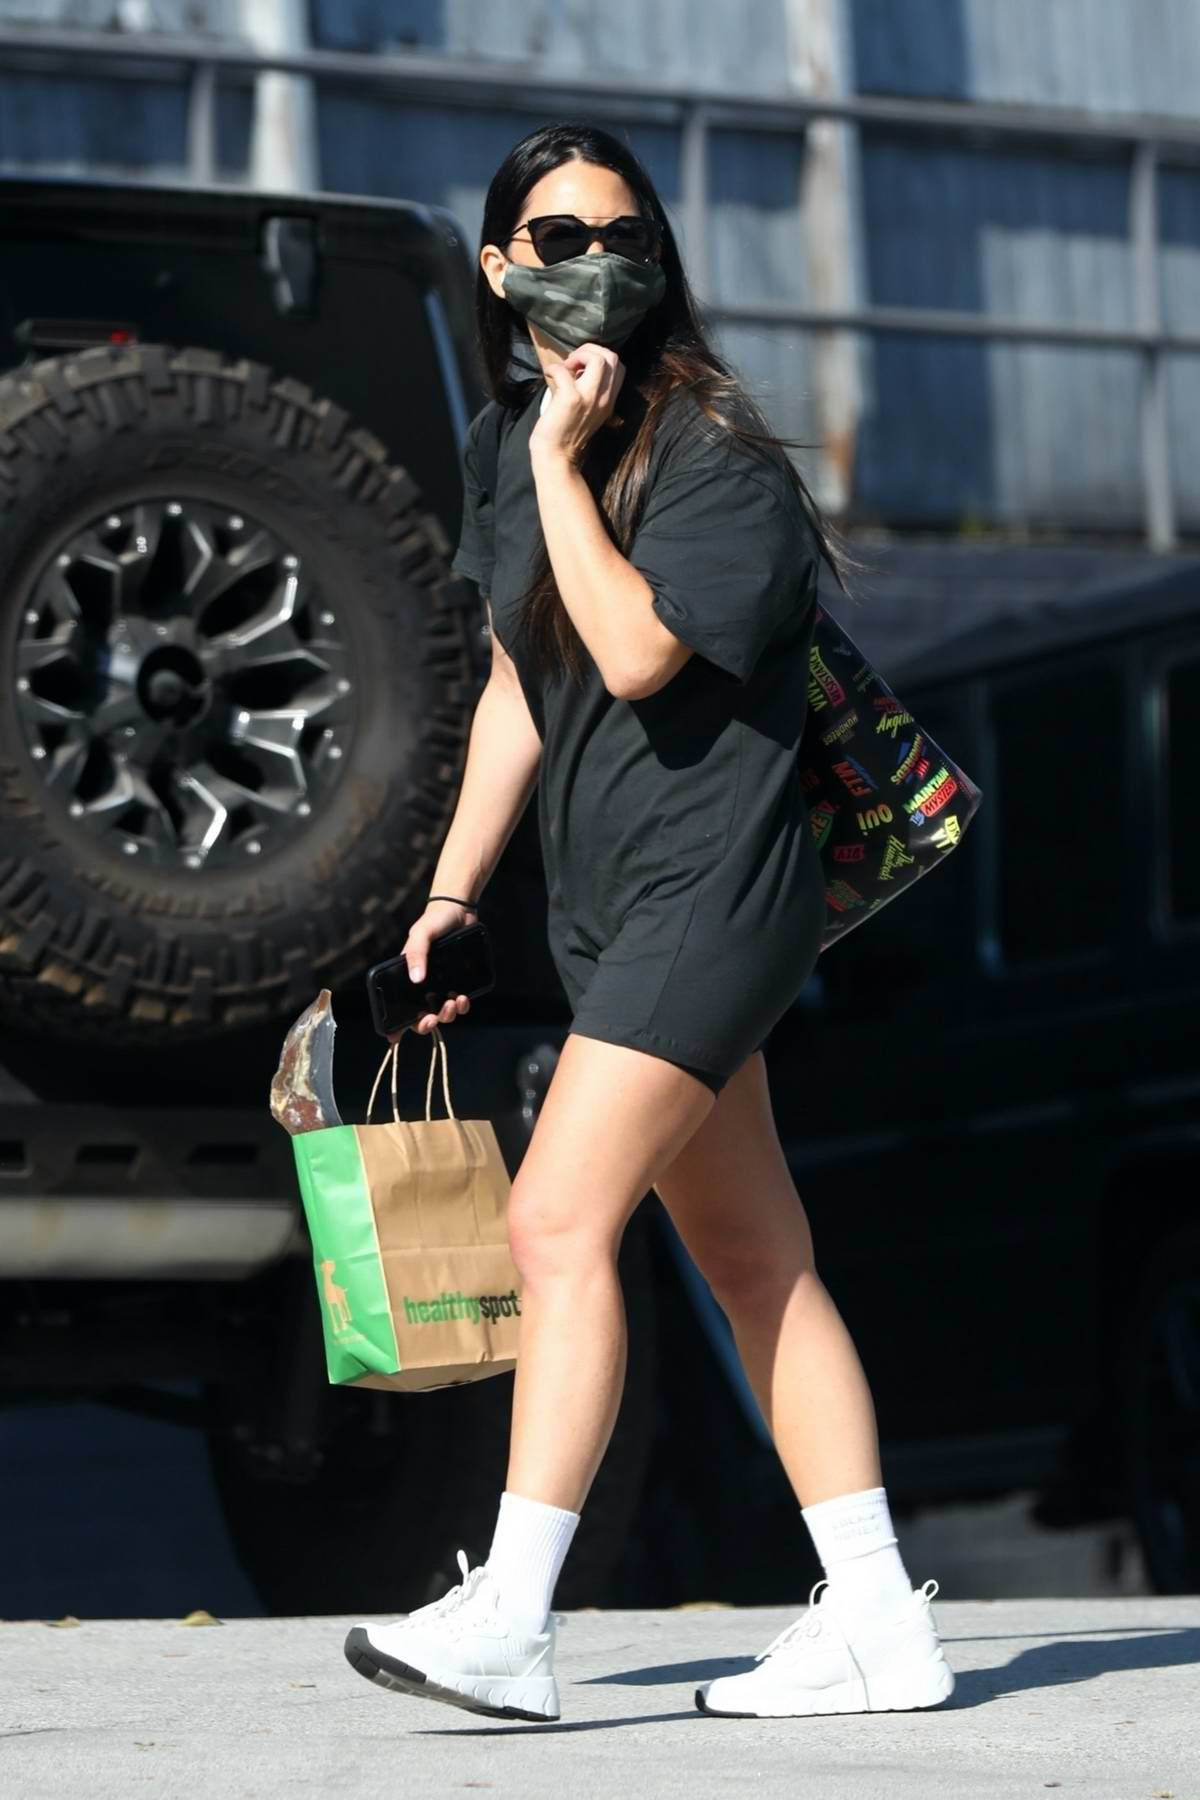 Olivia Munn flaunts her legs in an oversized black t-shirt and shorts while making a stop at Healthy Spot in West Hollywood, California